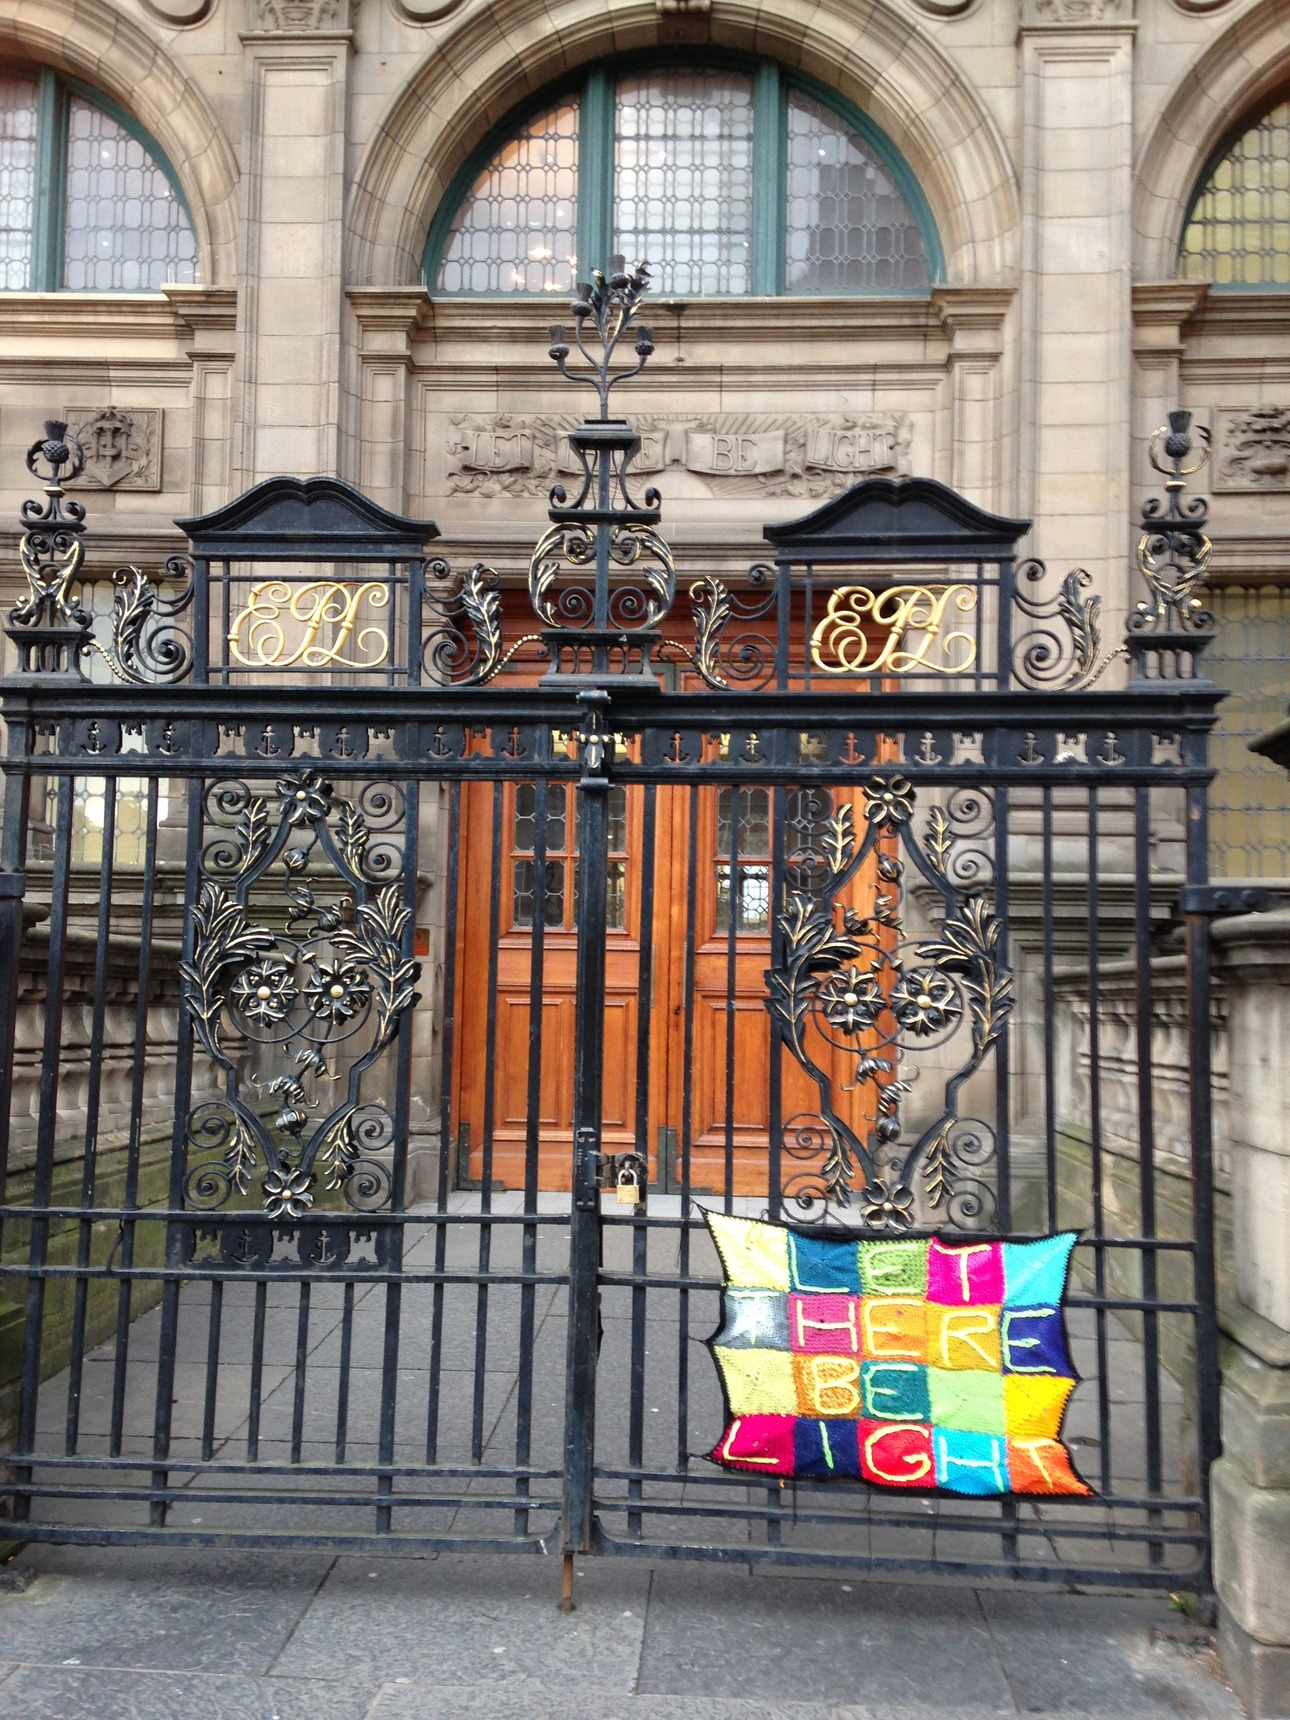 Yarn bombing at Central Library